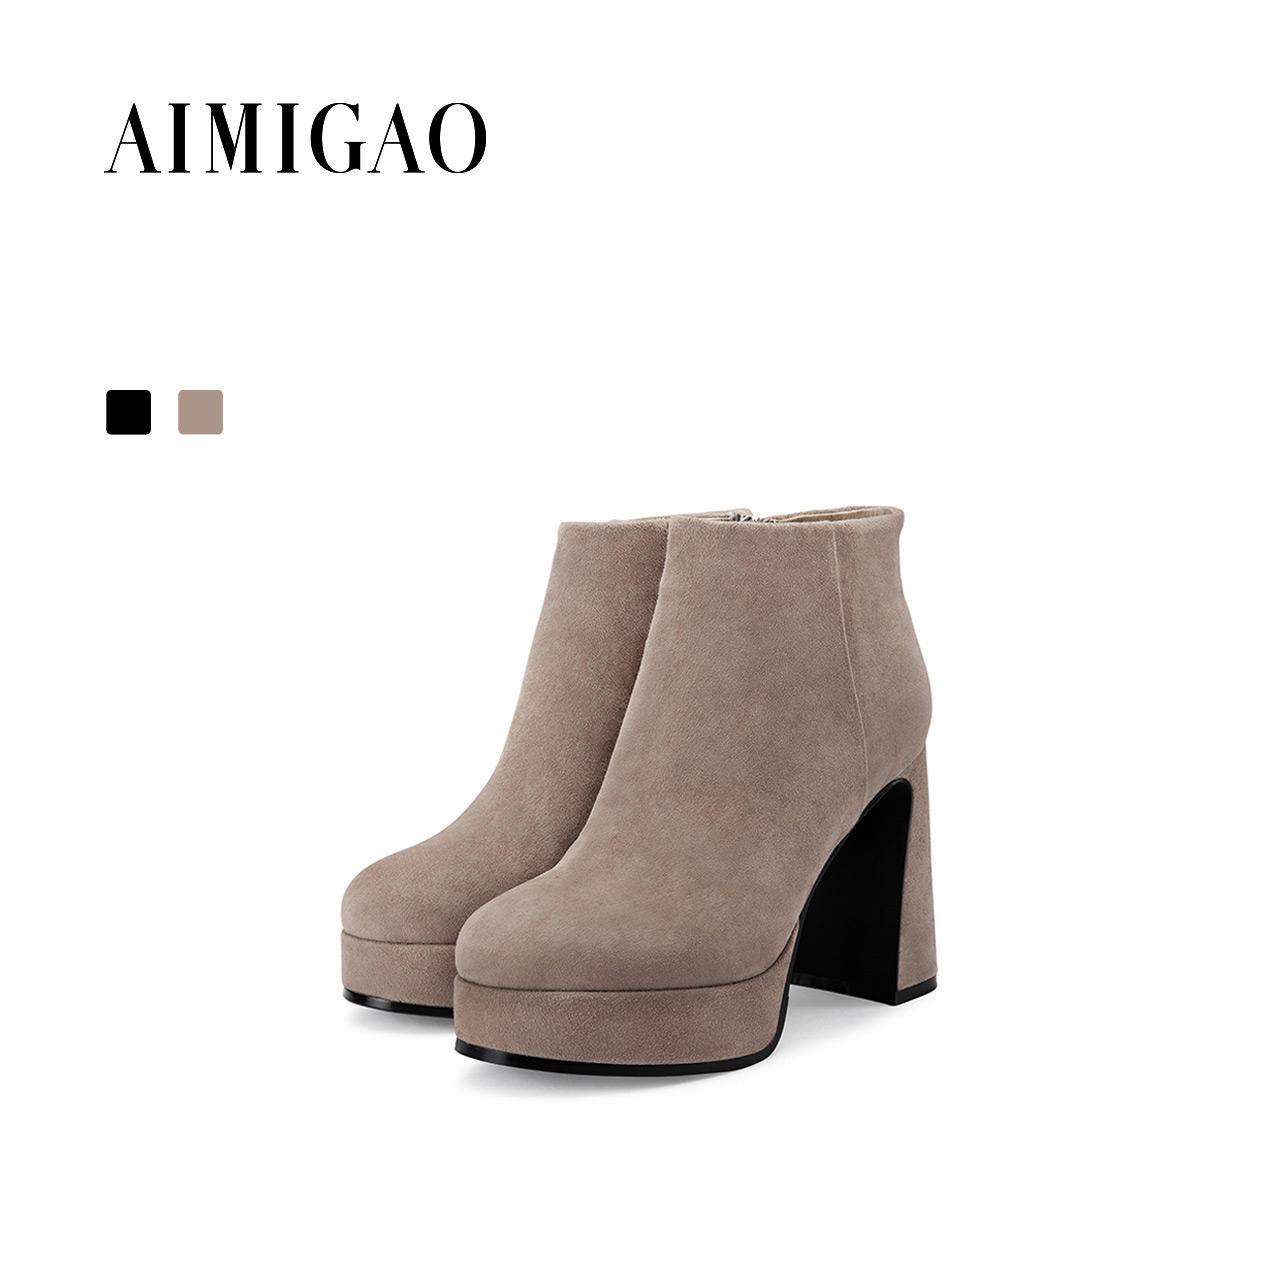 AIMIGAO suede leather Platform Ankle Boots women 2017 autumn winter new round toe thick heel fashion women boots side zipper 2017 autumn new suede short boots thick bottom round toe solid color ankle boots women fashion casual shoes